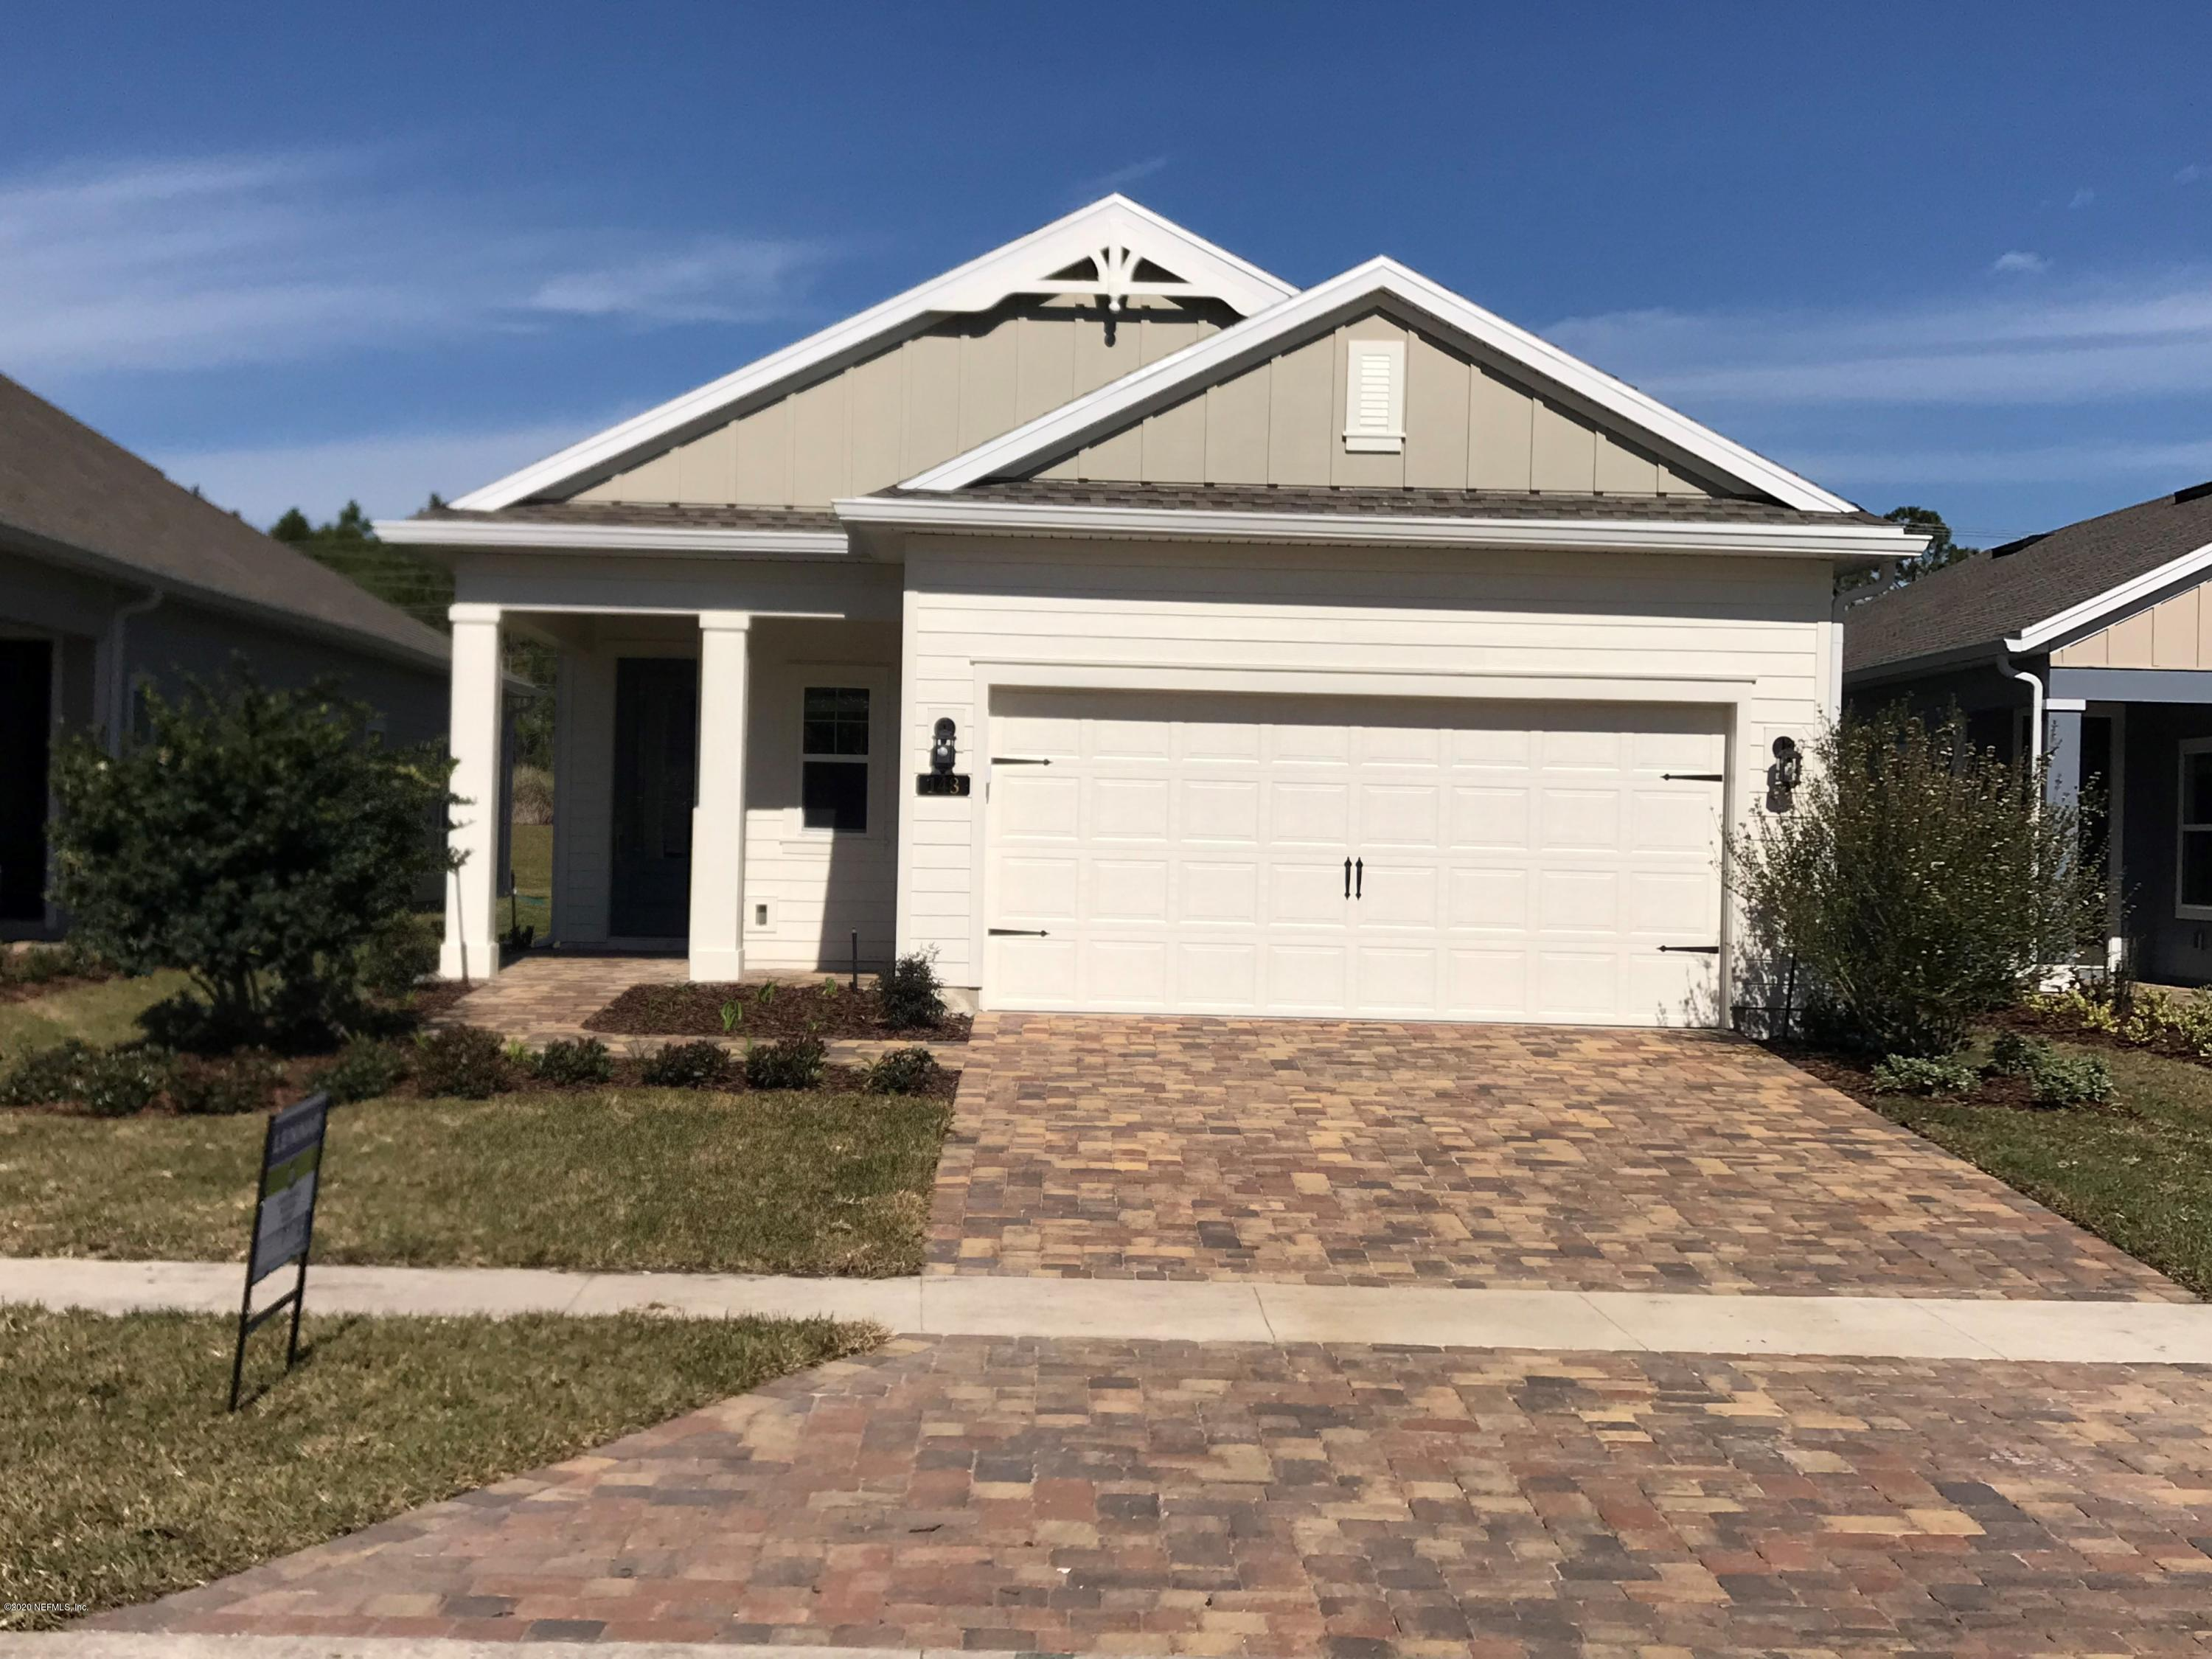 Details for 315 Live Oak Street, New Smyrna Beach, FL 32168